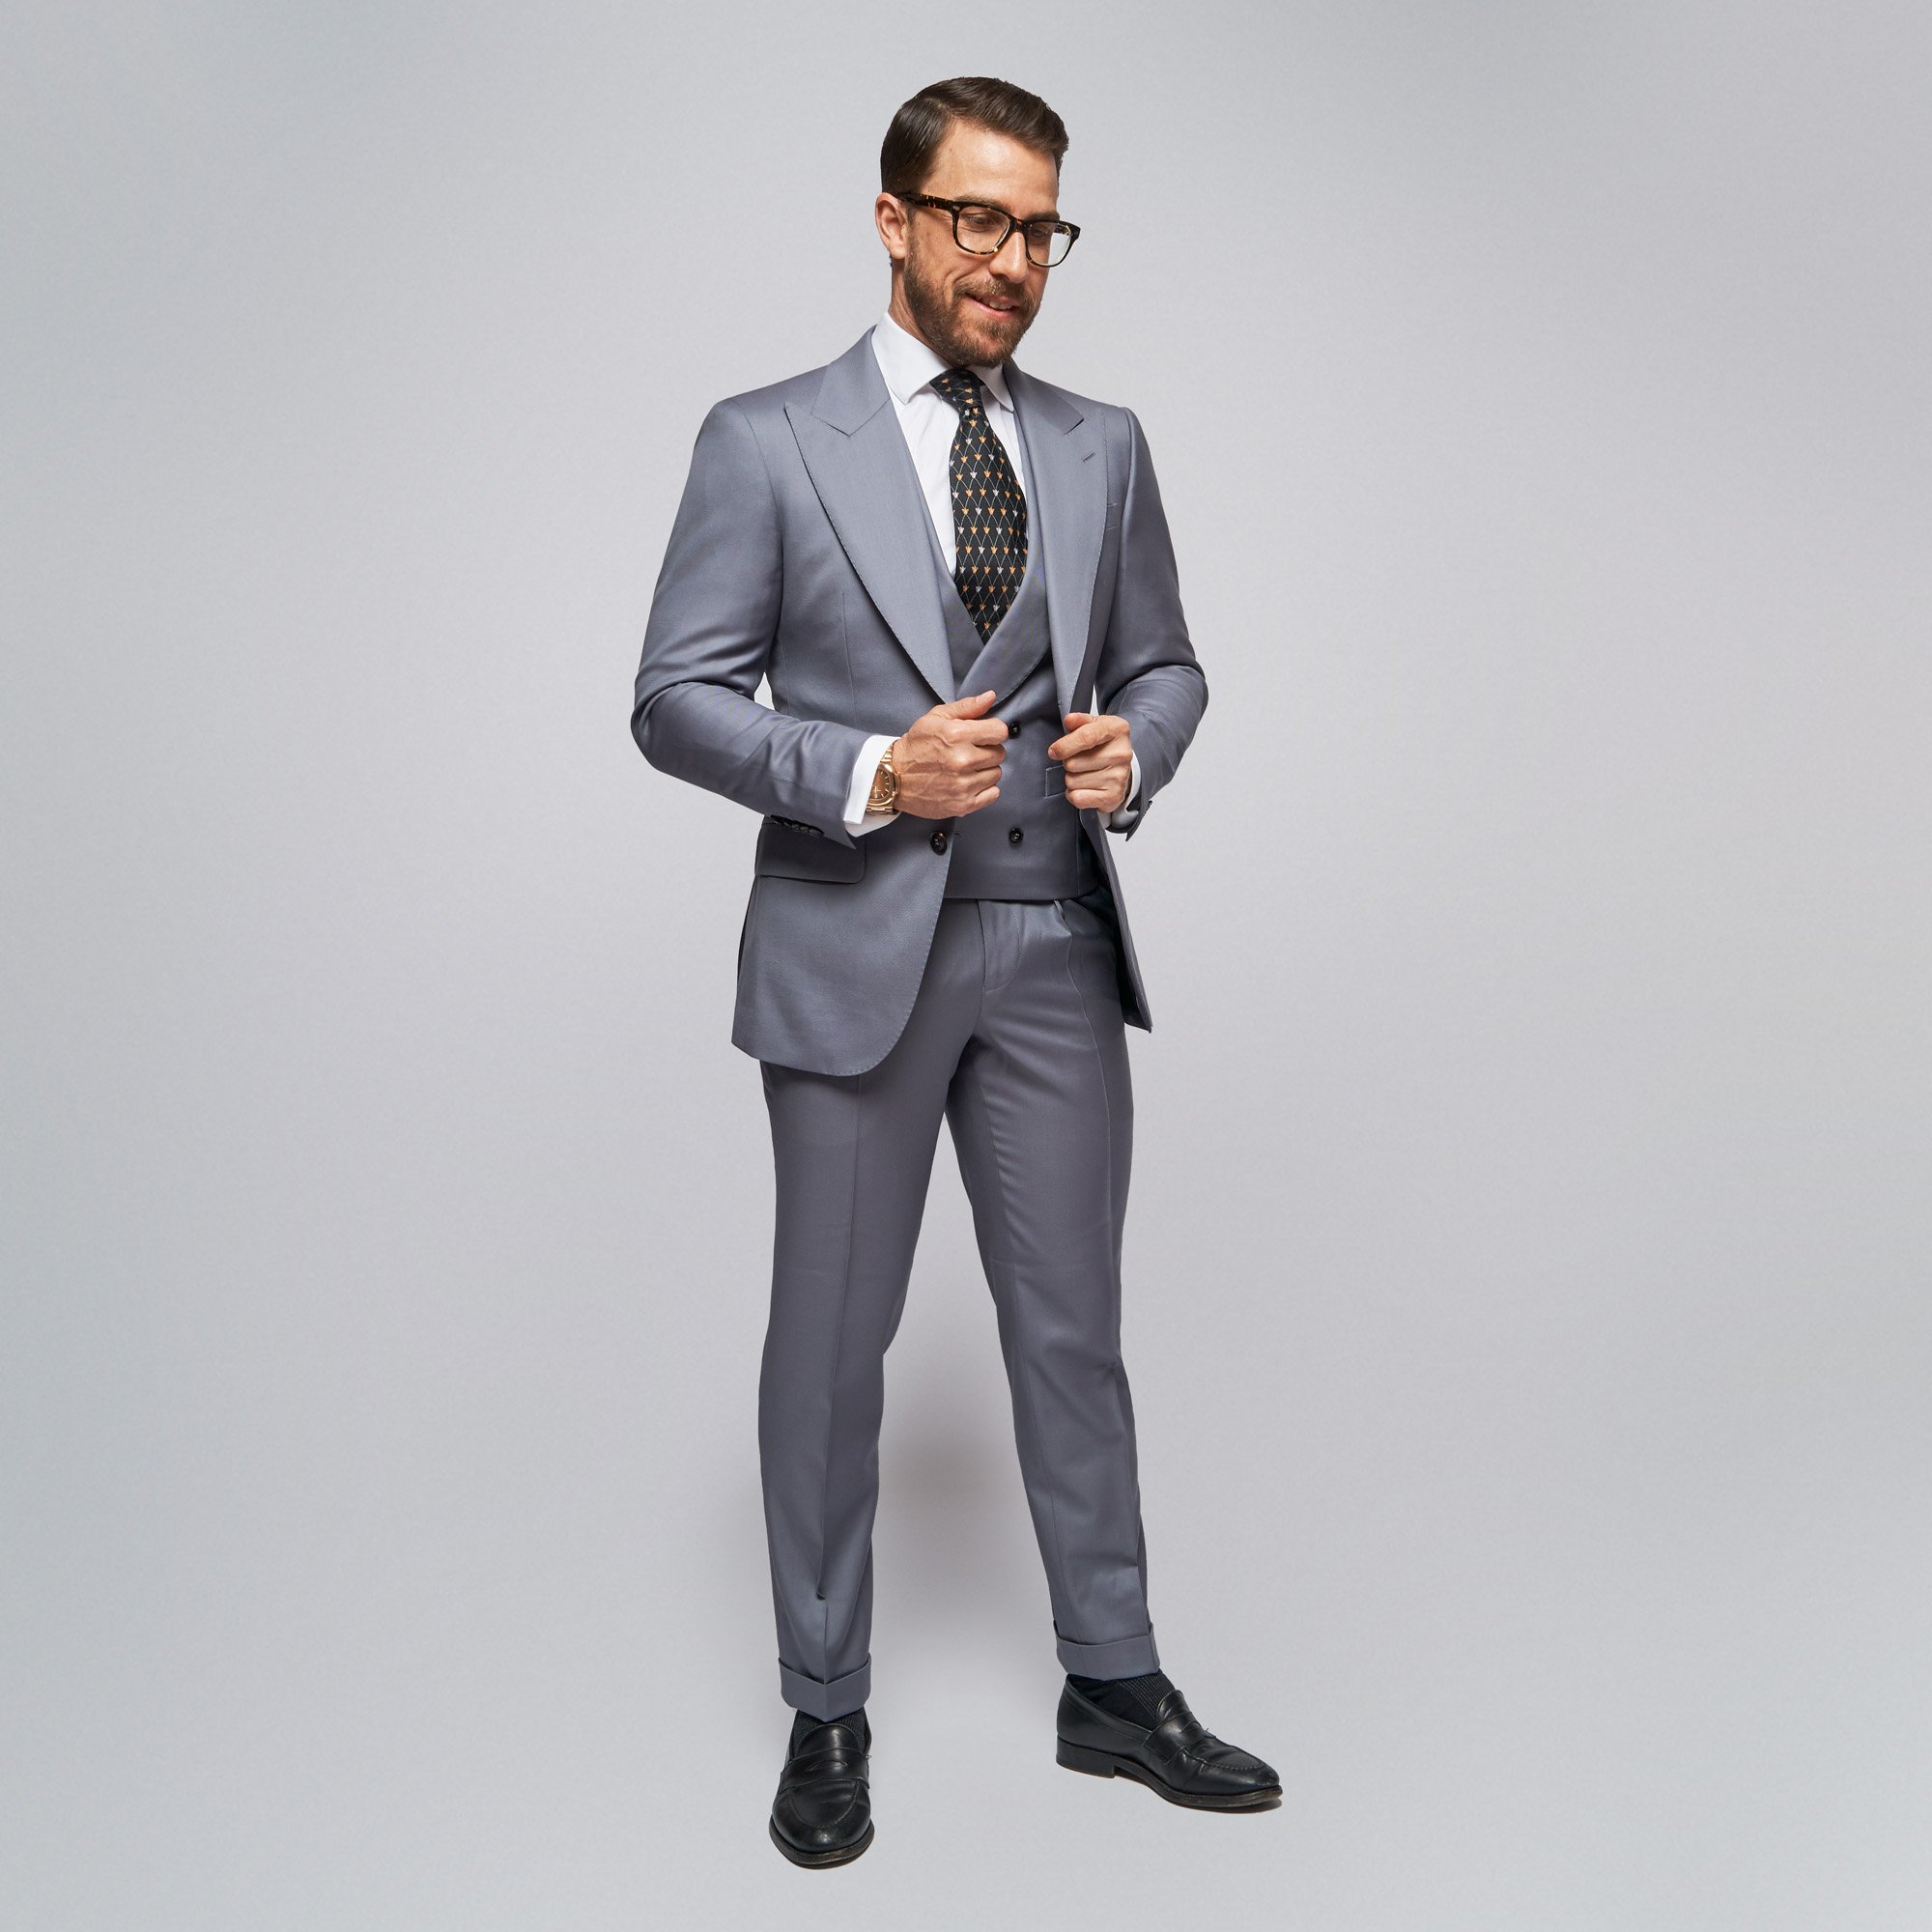 Brent Wilson Light Dark Silver Business suits Collection